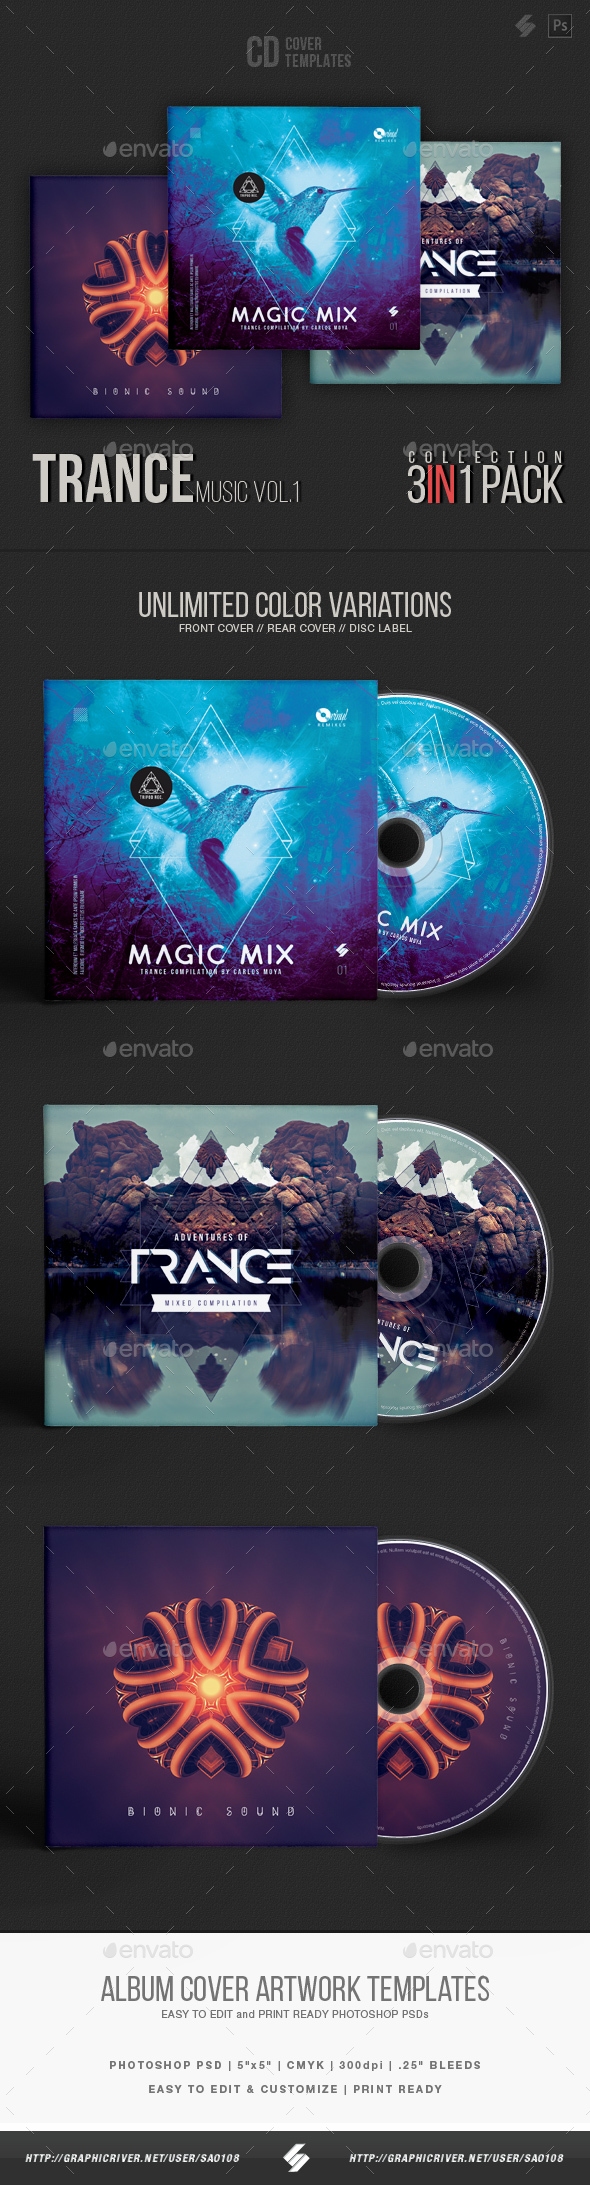 Trance Music CD Cover Artwork Templates Bundle - CD & DVD Artwork Print Templates